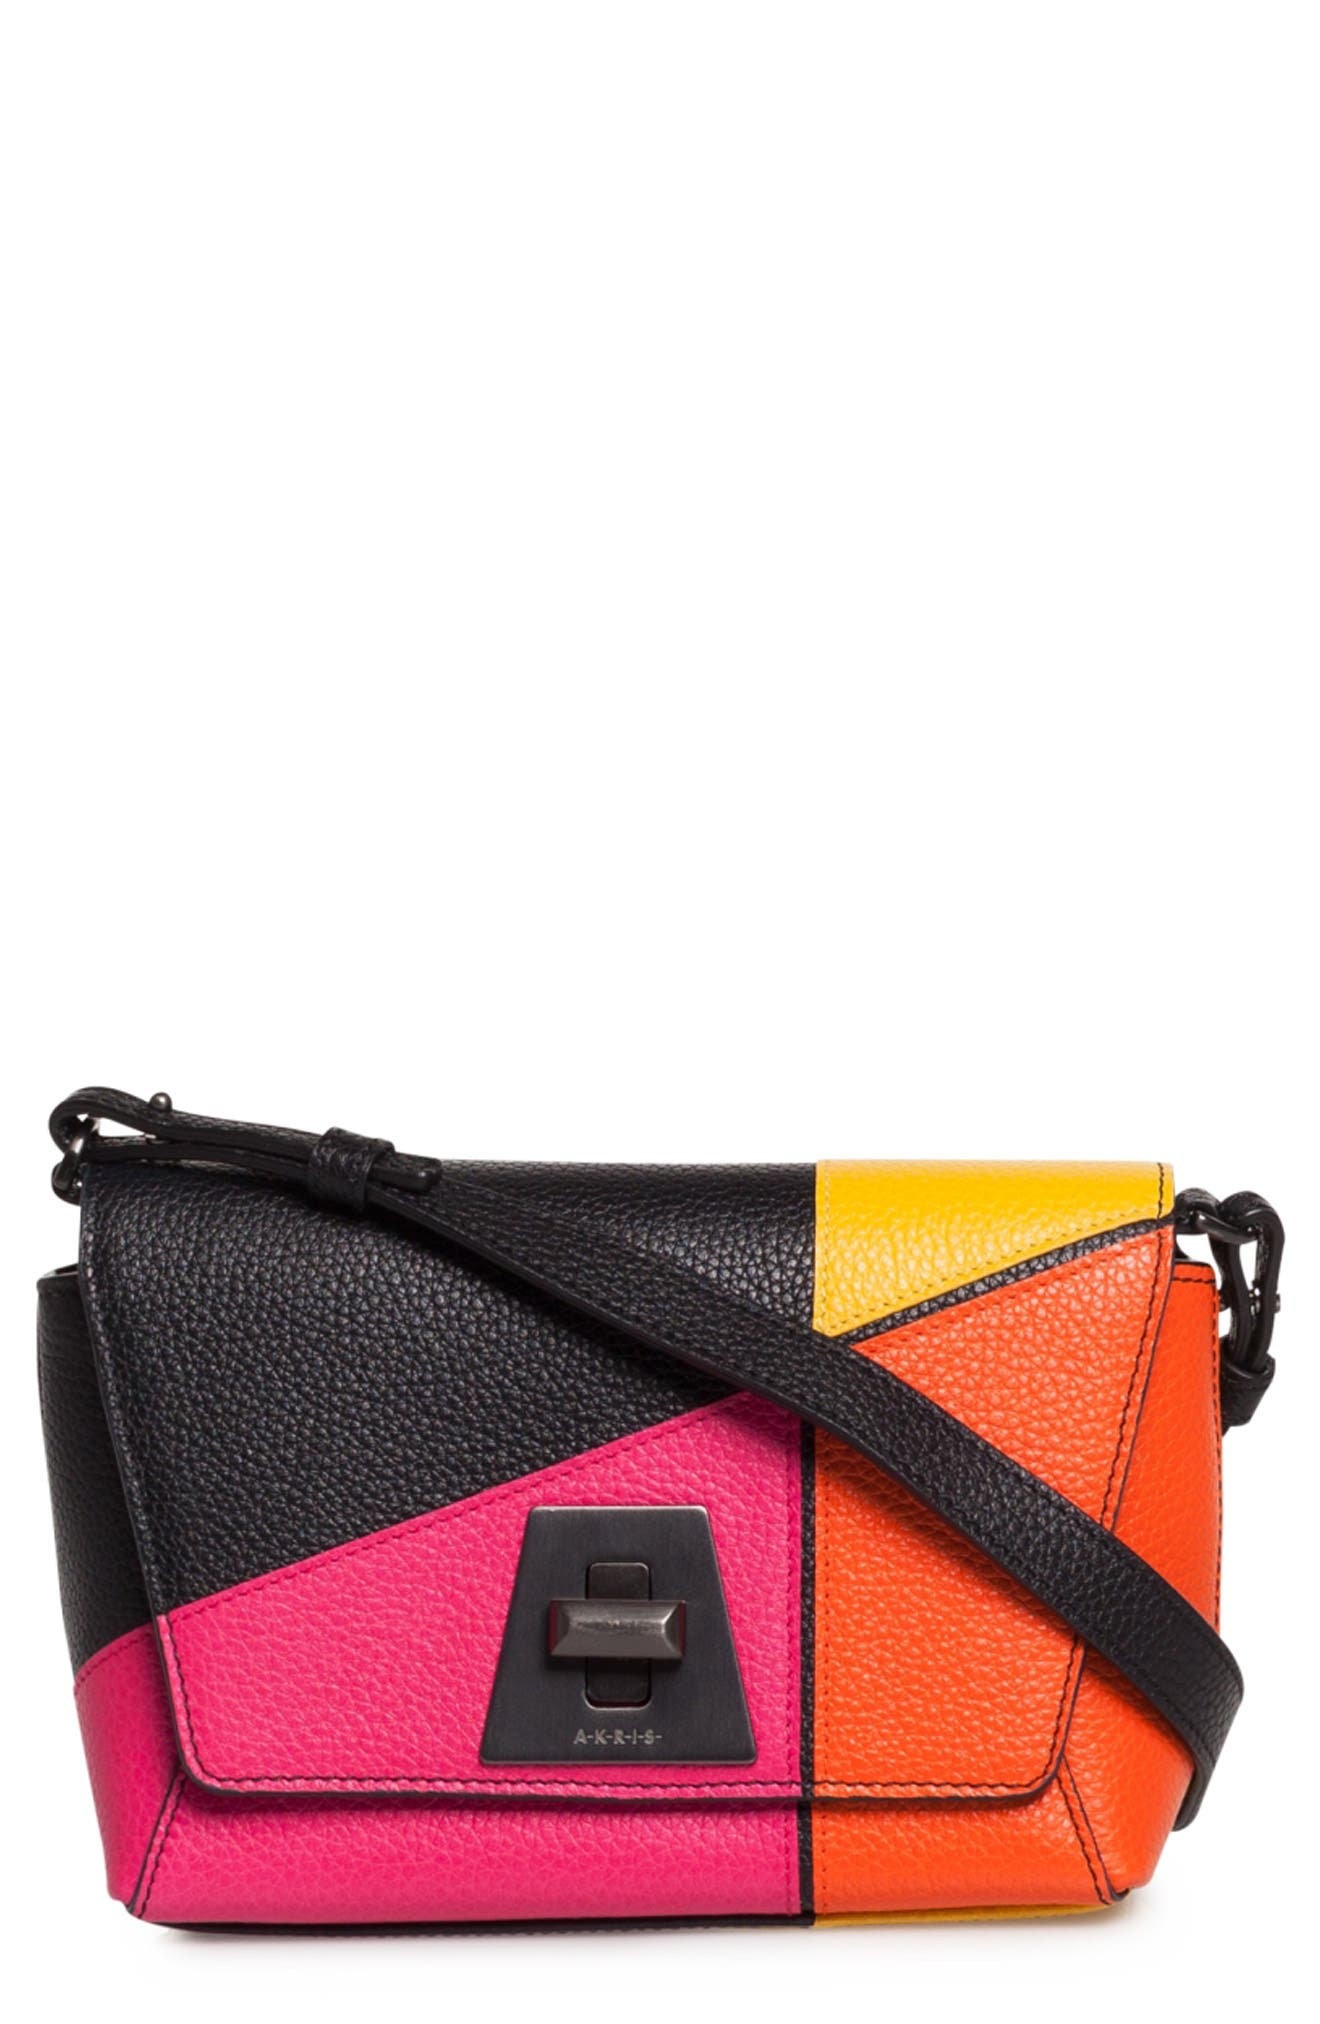 Akris LITTLE ANOUK PATCHWORK LEATHER CROSSBODY BAG - PINK